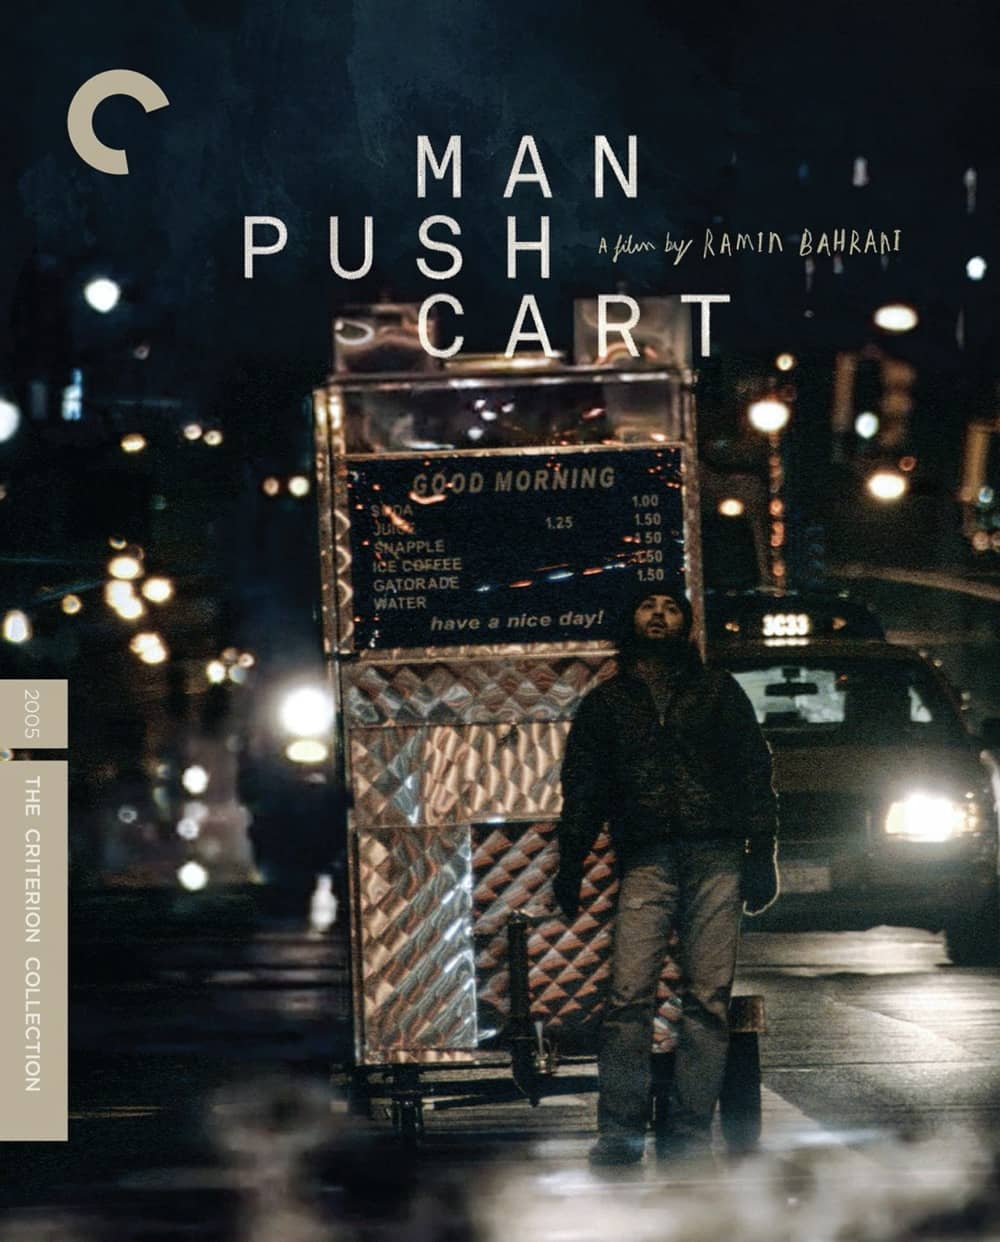 Man Push Cart Criterion Collection Bluray Cover